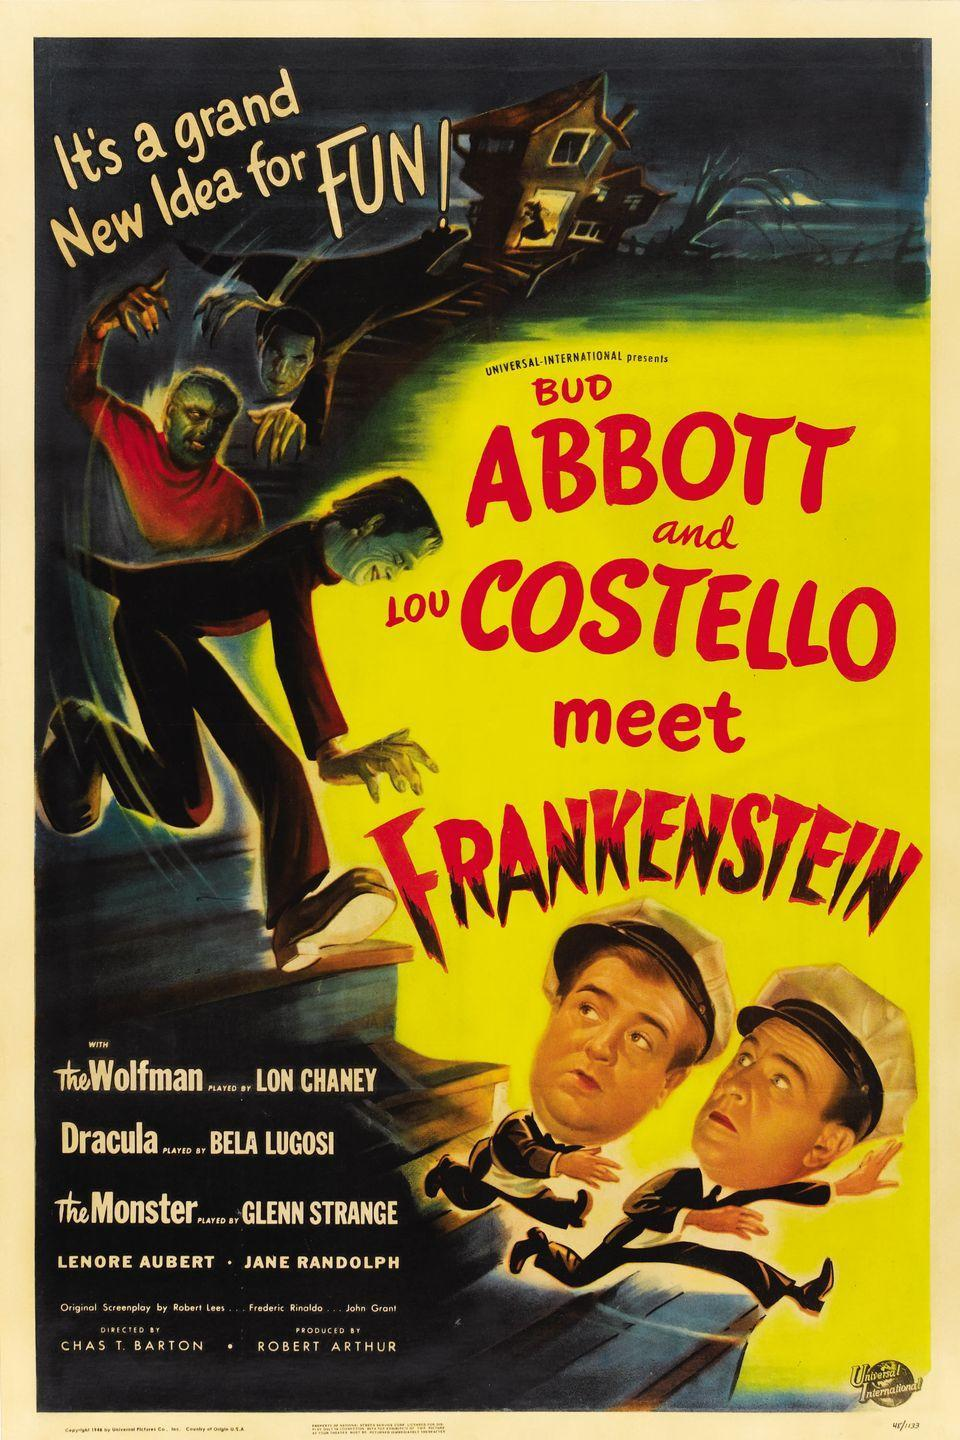 """<p>Comedy duo Abbott and Costello kicked off their famed movie series with <em>Abbott and Costello Meet Frankenstein</em>. The pair would follow up the success of this film by """"meeting"""" the Invisible Man, Dr. Jekyll and Mr. Hyde, and the Mummy, to name a few. </p>"""